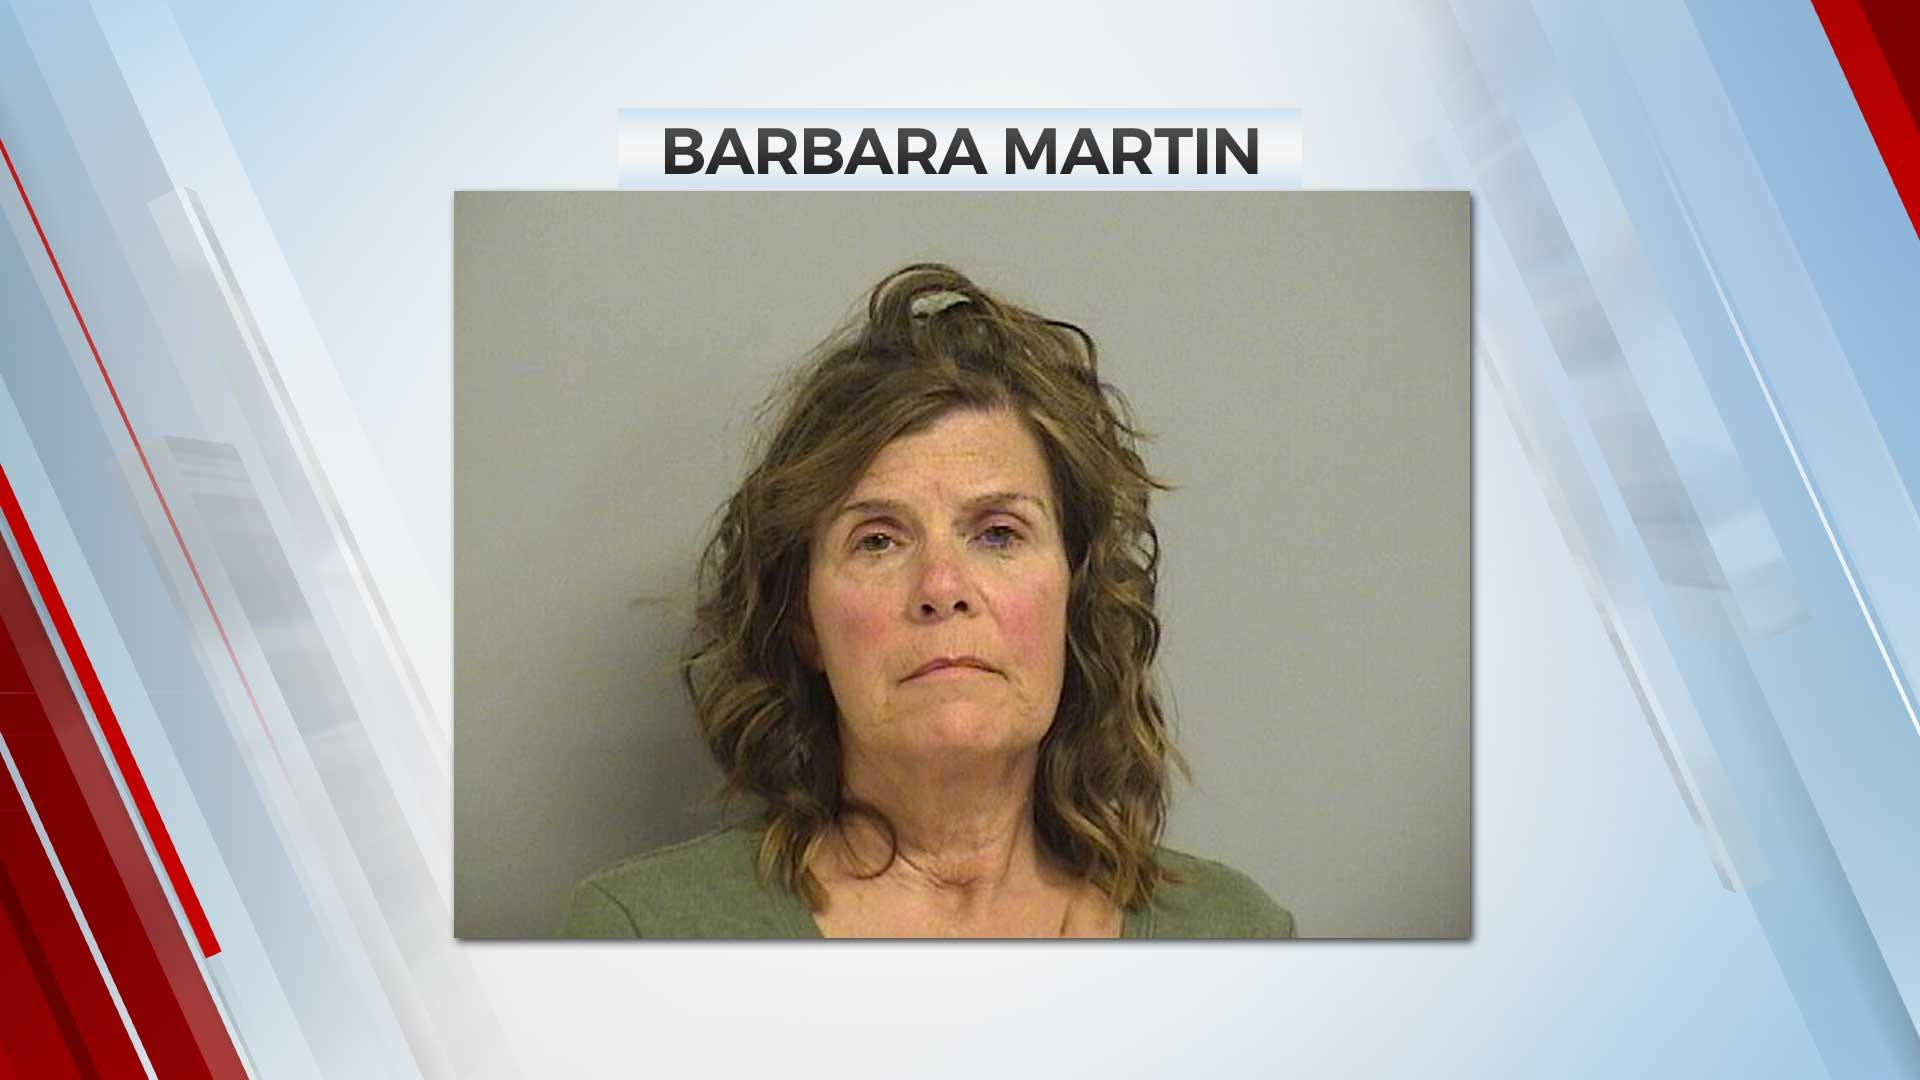 Tulsa Woman Arrested On DUI Complaint After Clipping Fire Truck